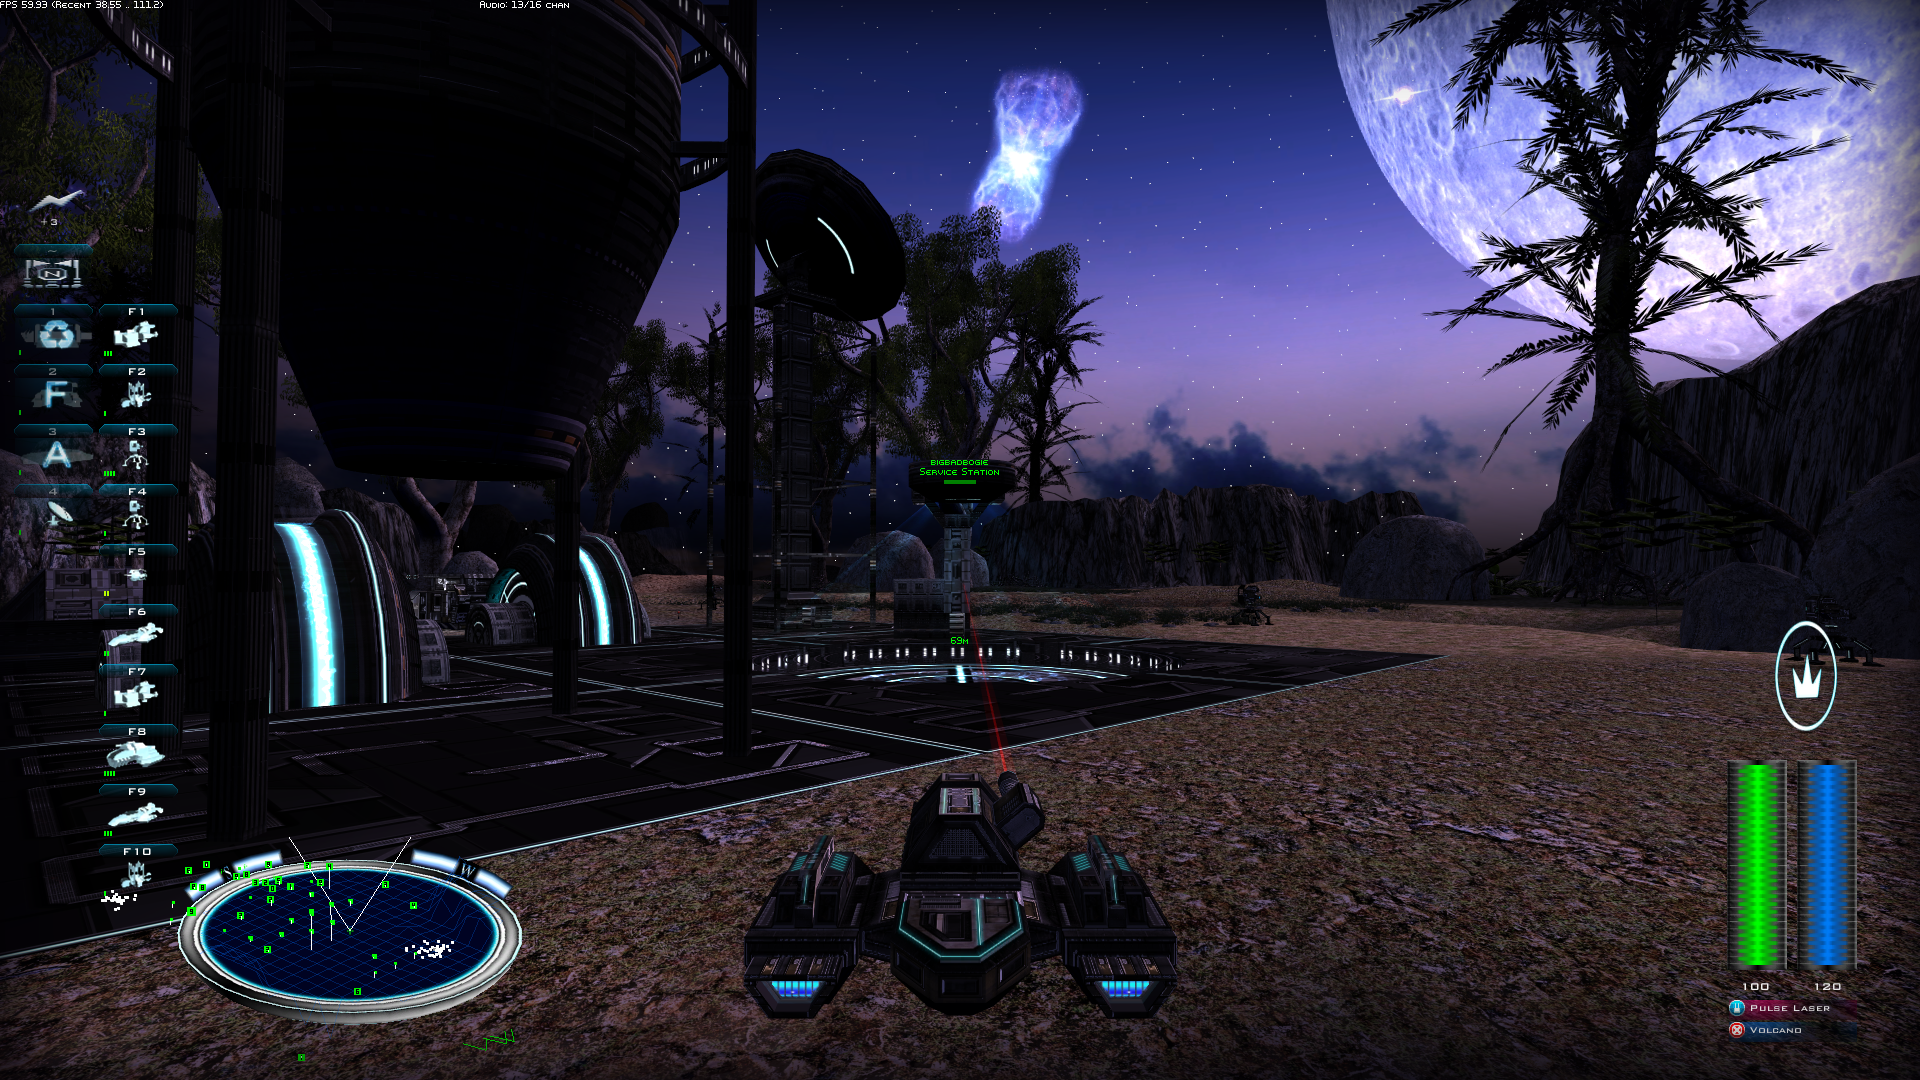 Night time on akaifa image qf2 essence to a thief for Battlezone 2